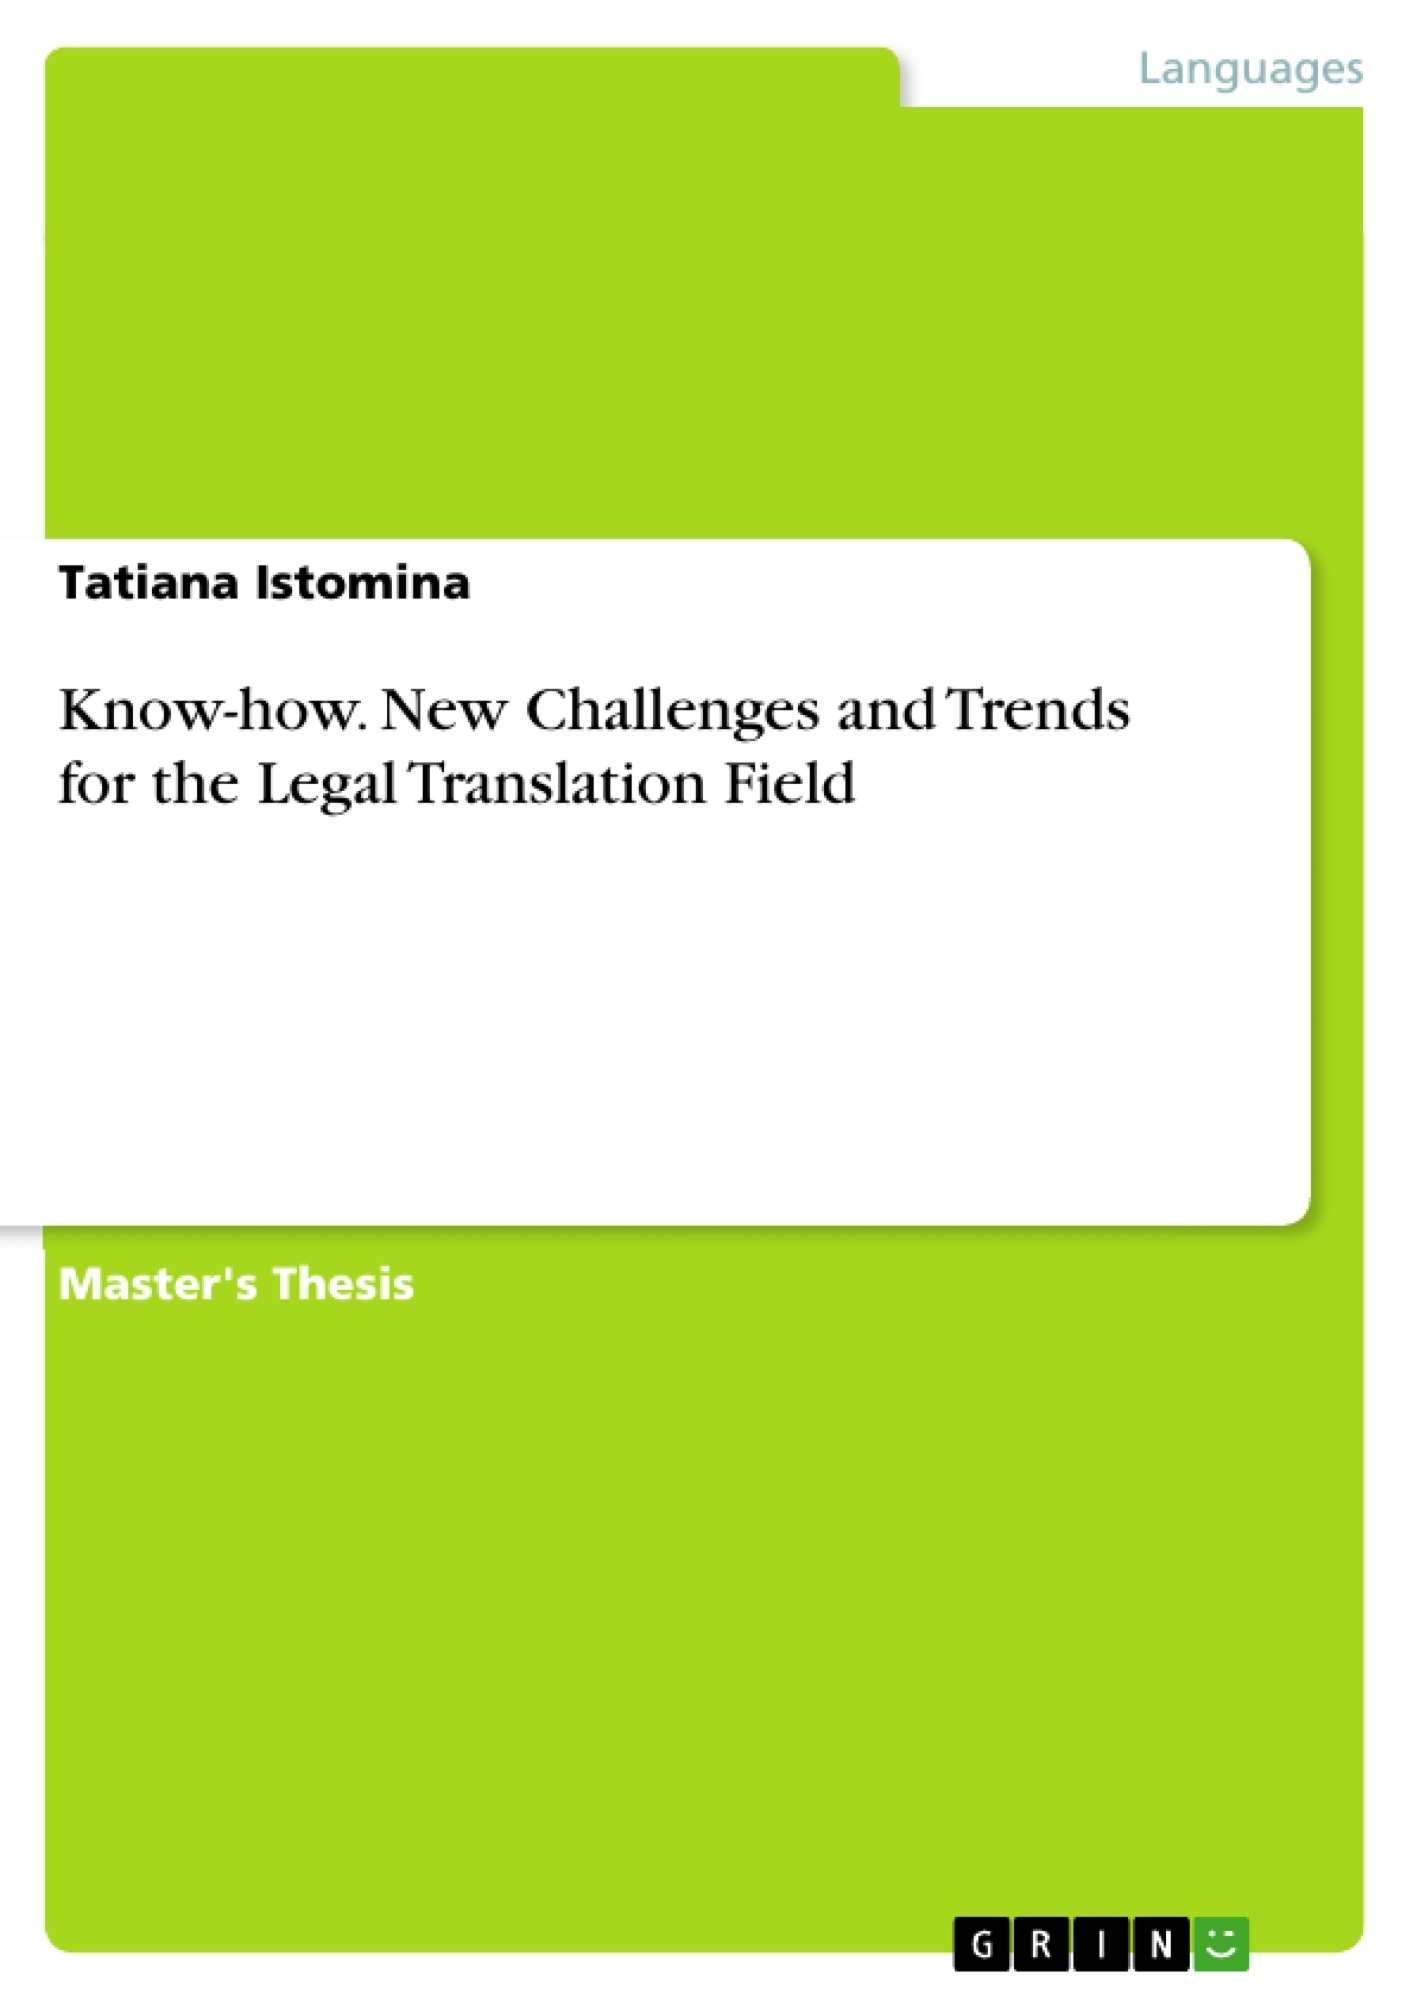 Title: Know-how. New Challenges and Trends for the Legal Translation Field